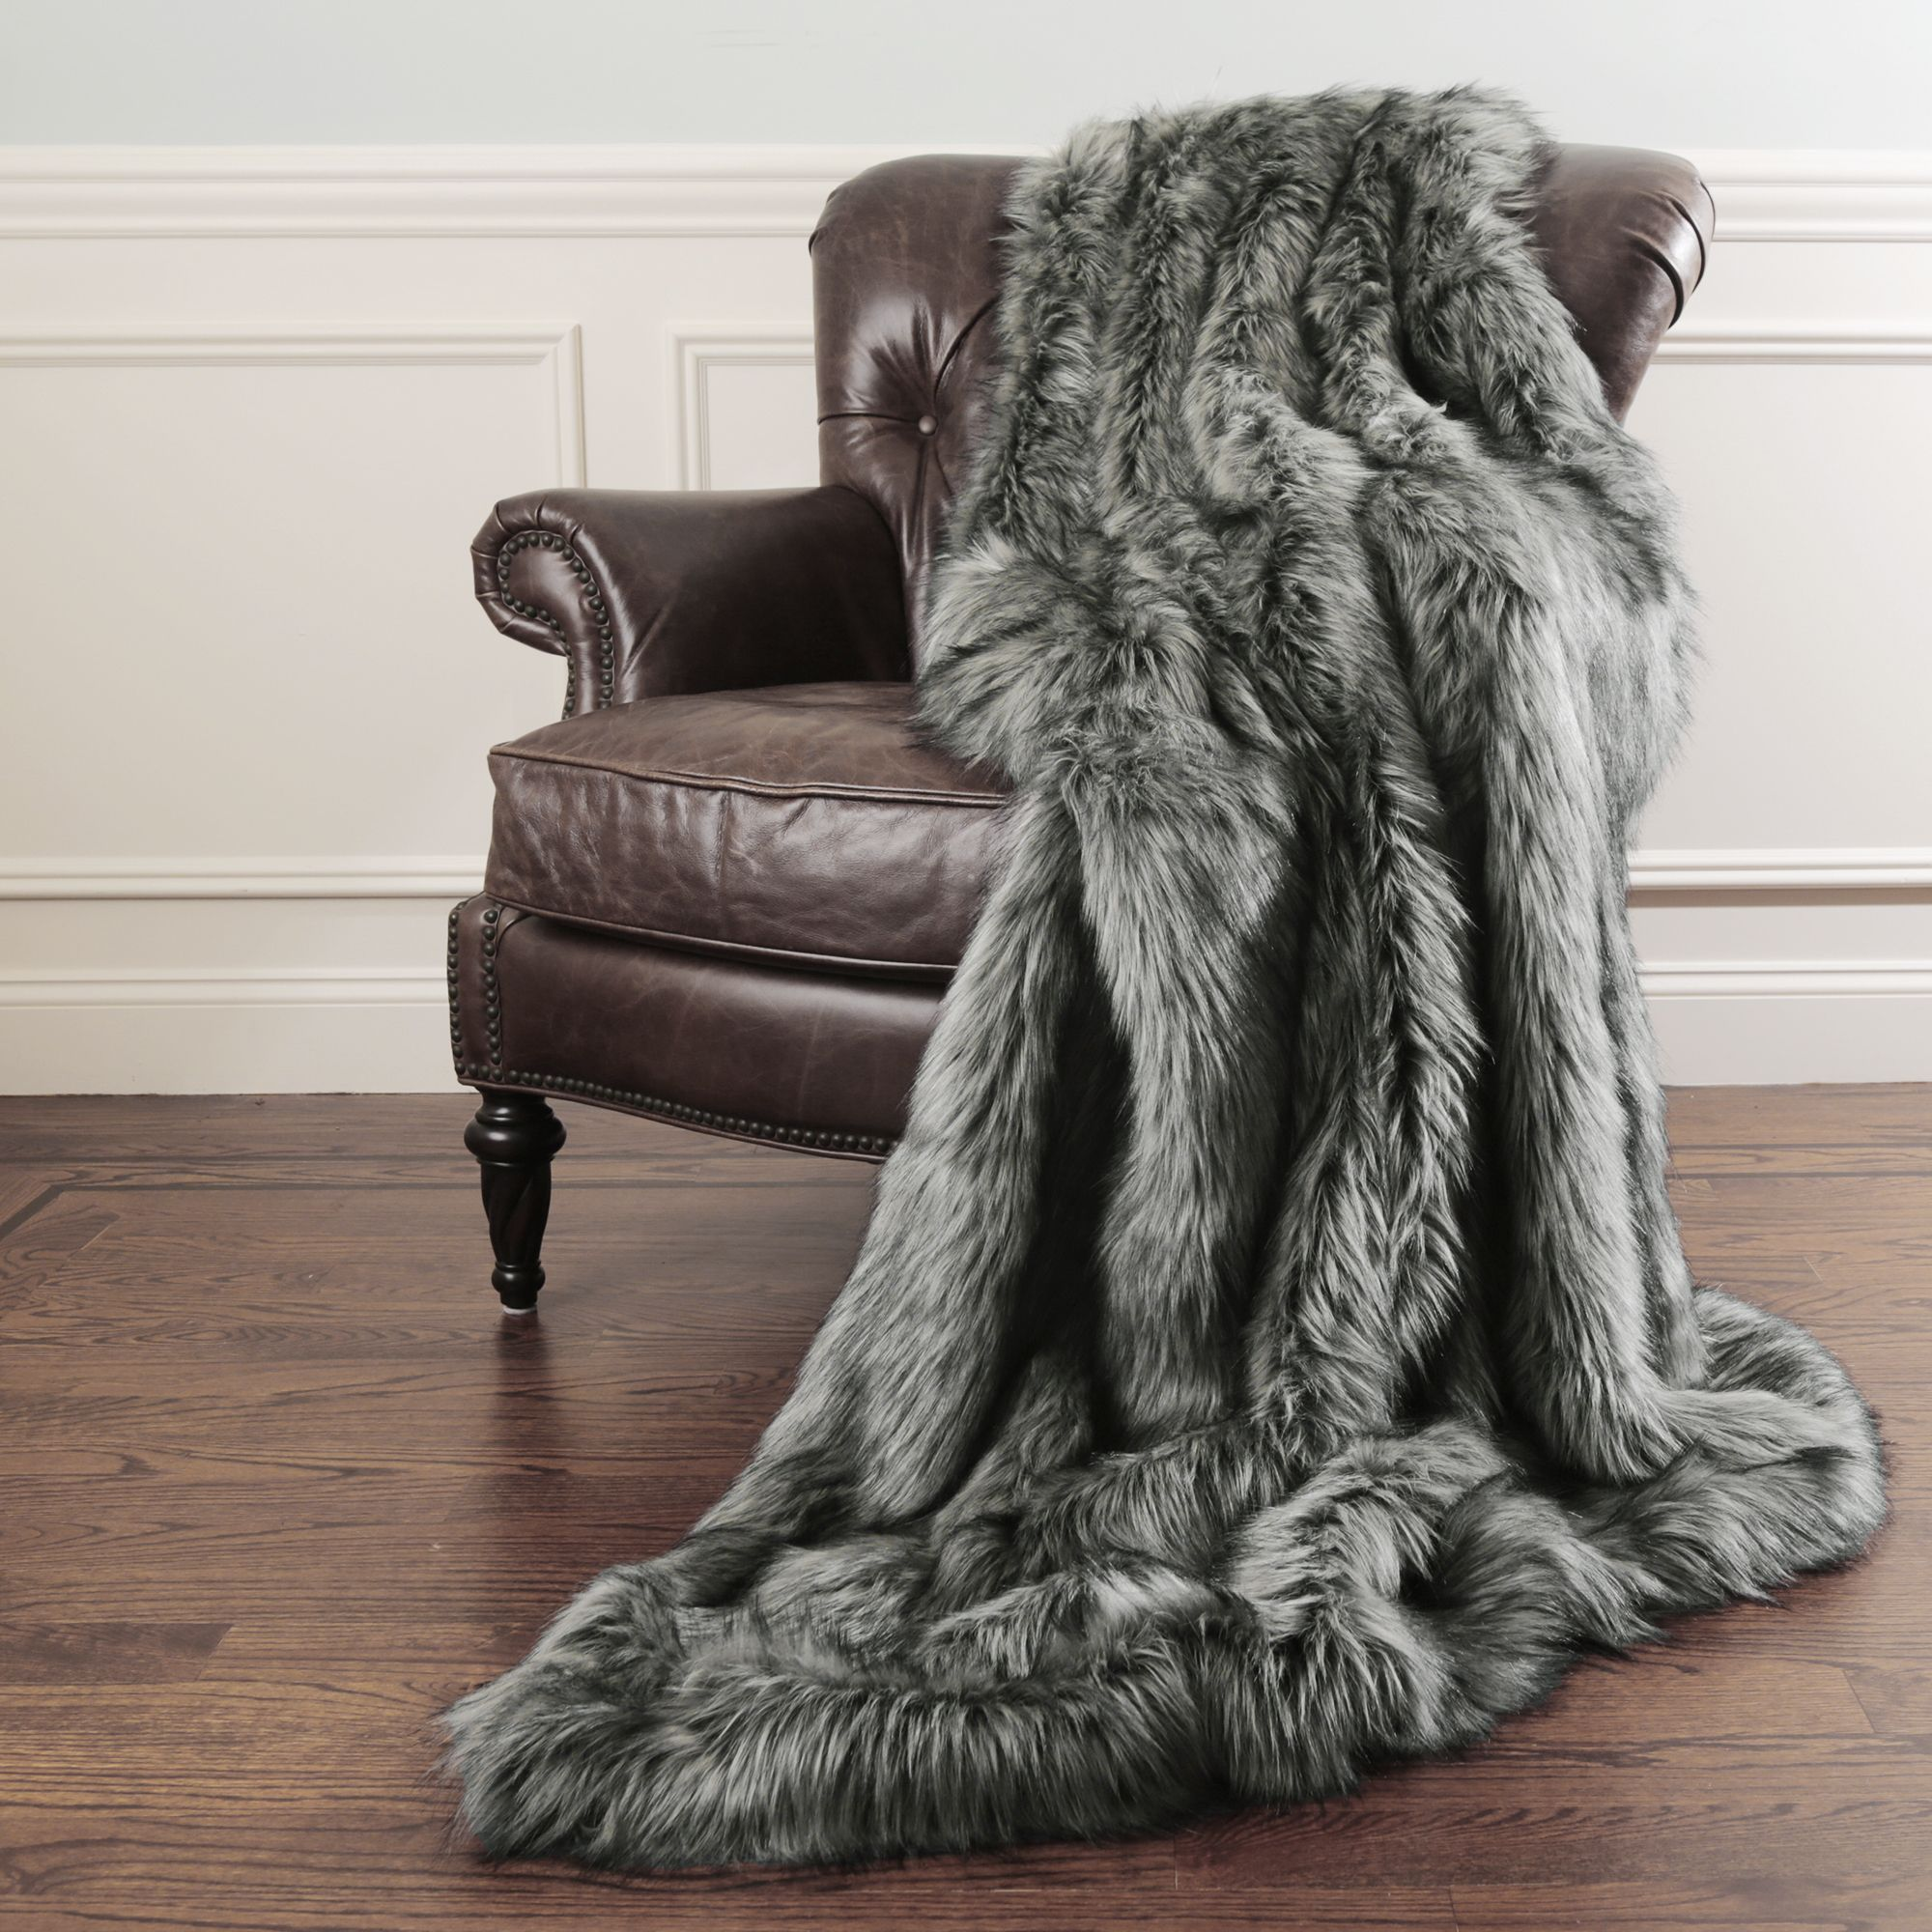 Each Faux Fur Throw Comes With A Faux Fur Key Chain. The